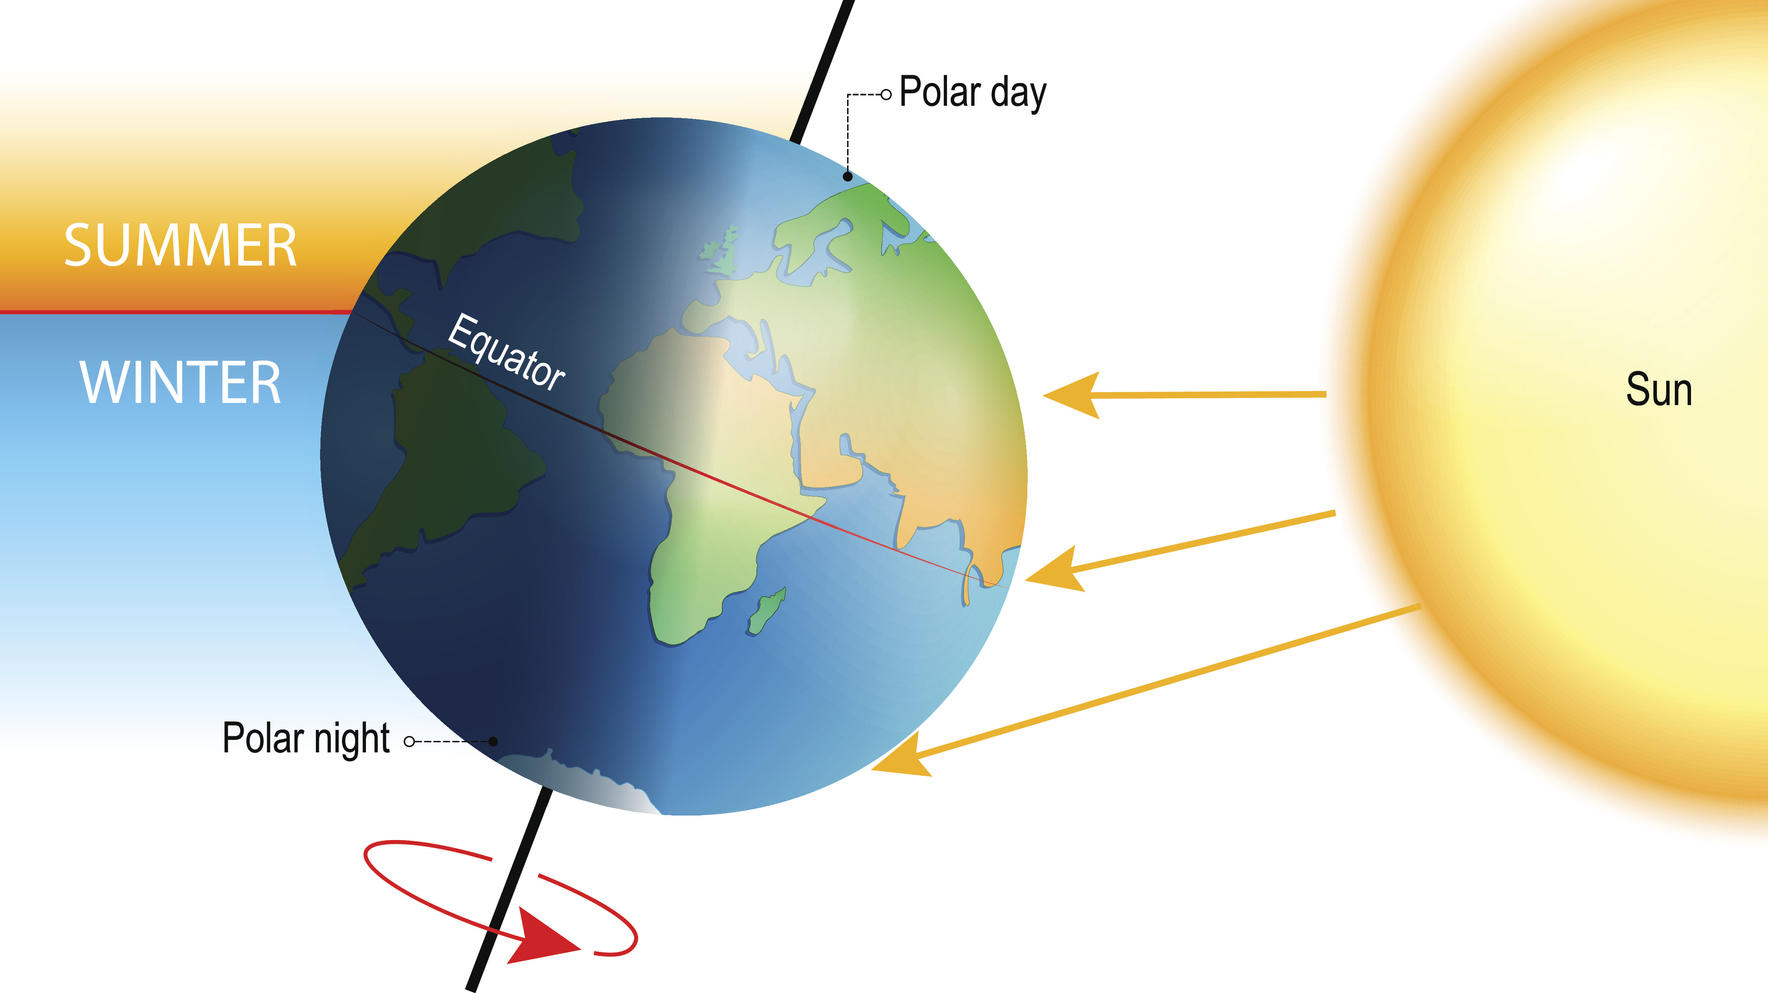 tilt of the Earth's axis. seasons is  the result from the Earth's axis of rotation being tilted with respect to its orbital plane. the northern and southern hemispheres always experience opposite seasons. One part of the planet is more directly expos